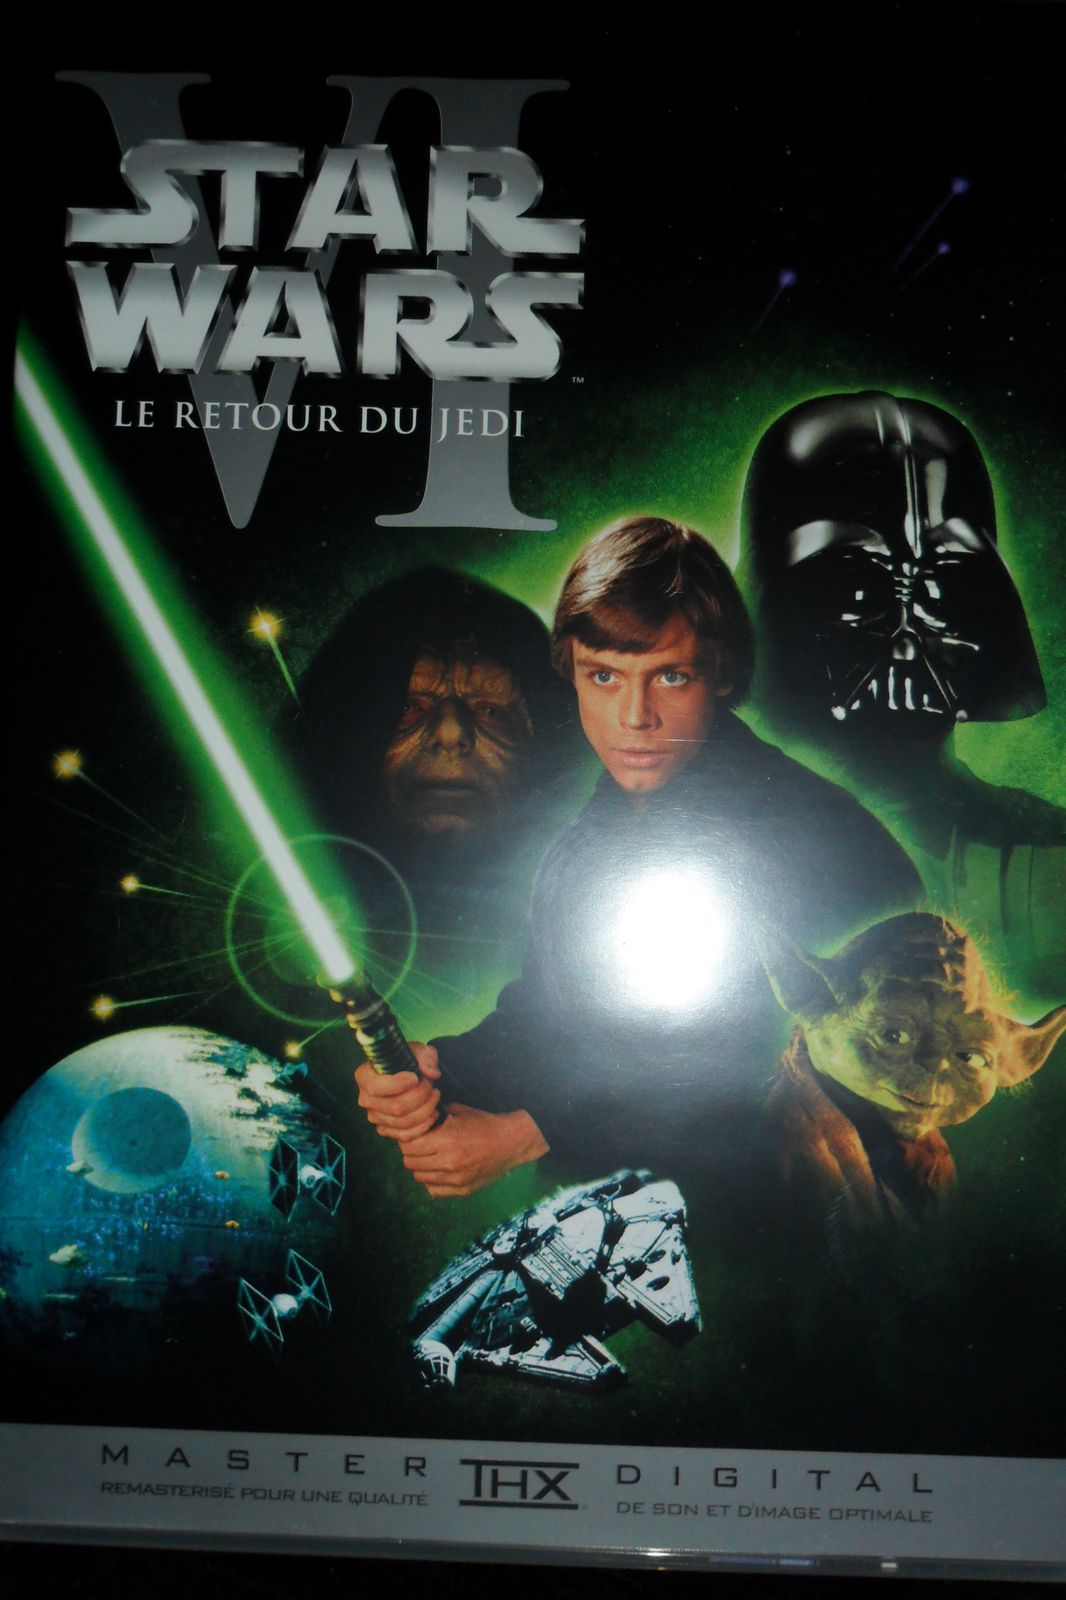 http://idata.over-blog.com/3/18/35/93/jano/film-star-wars/SAM_0006.JPG